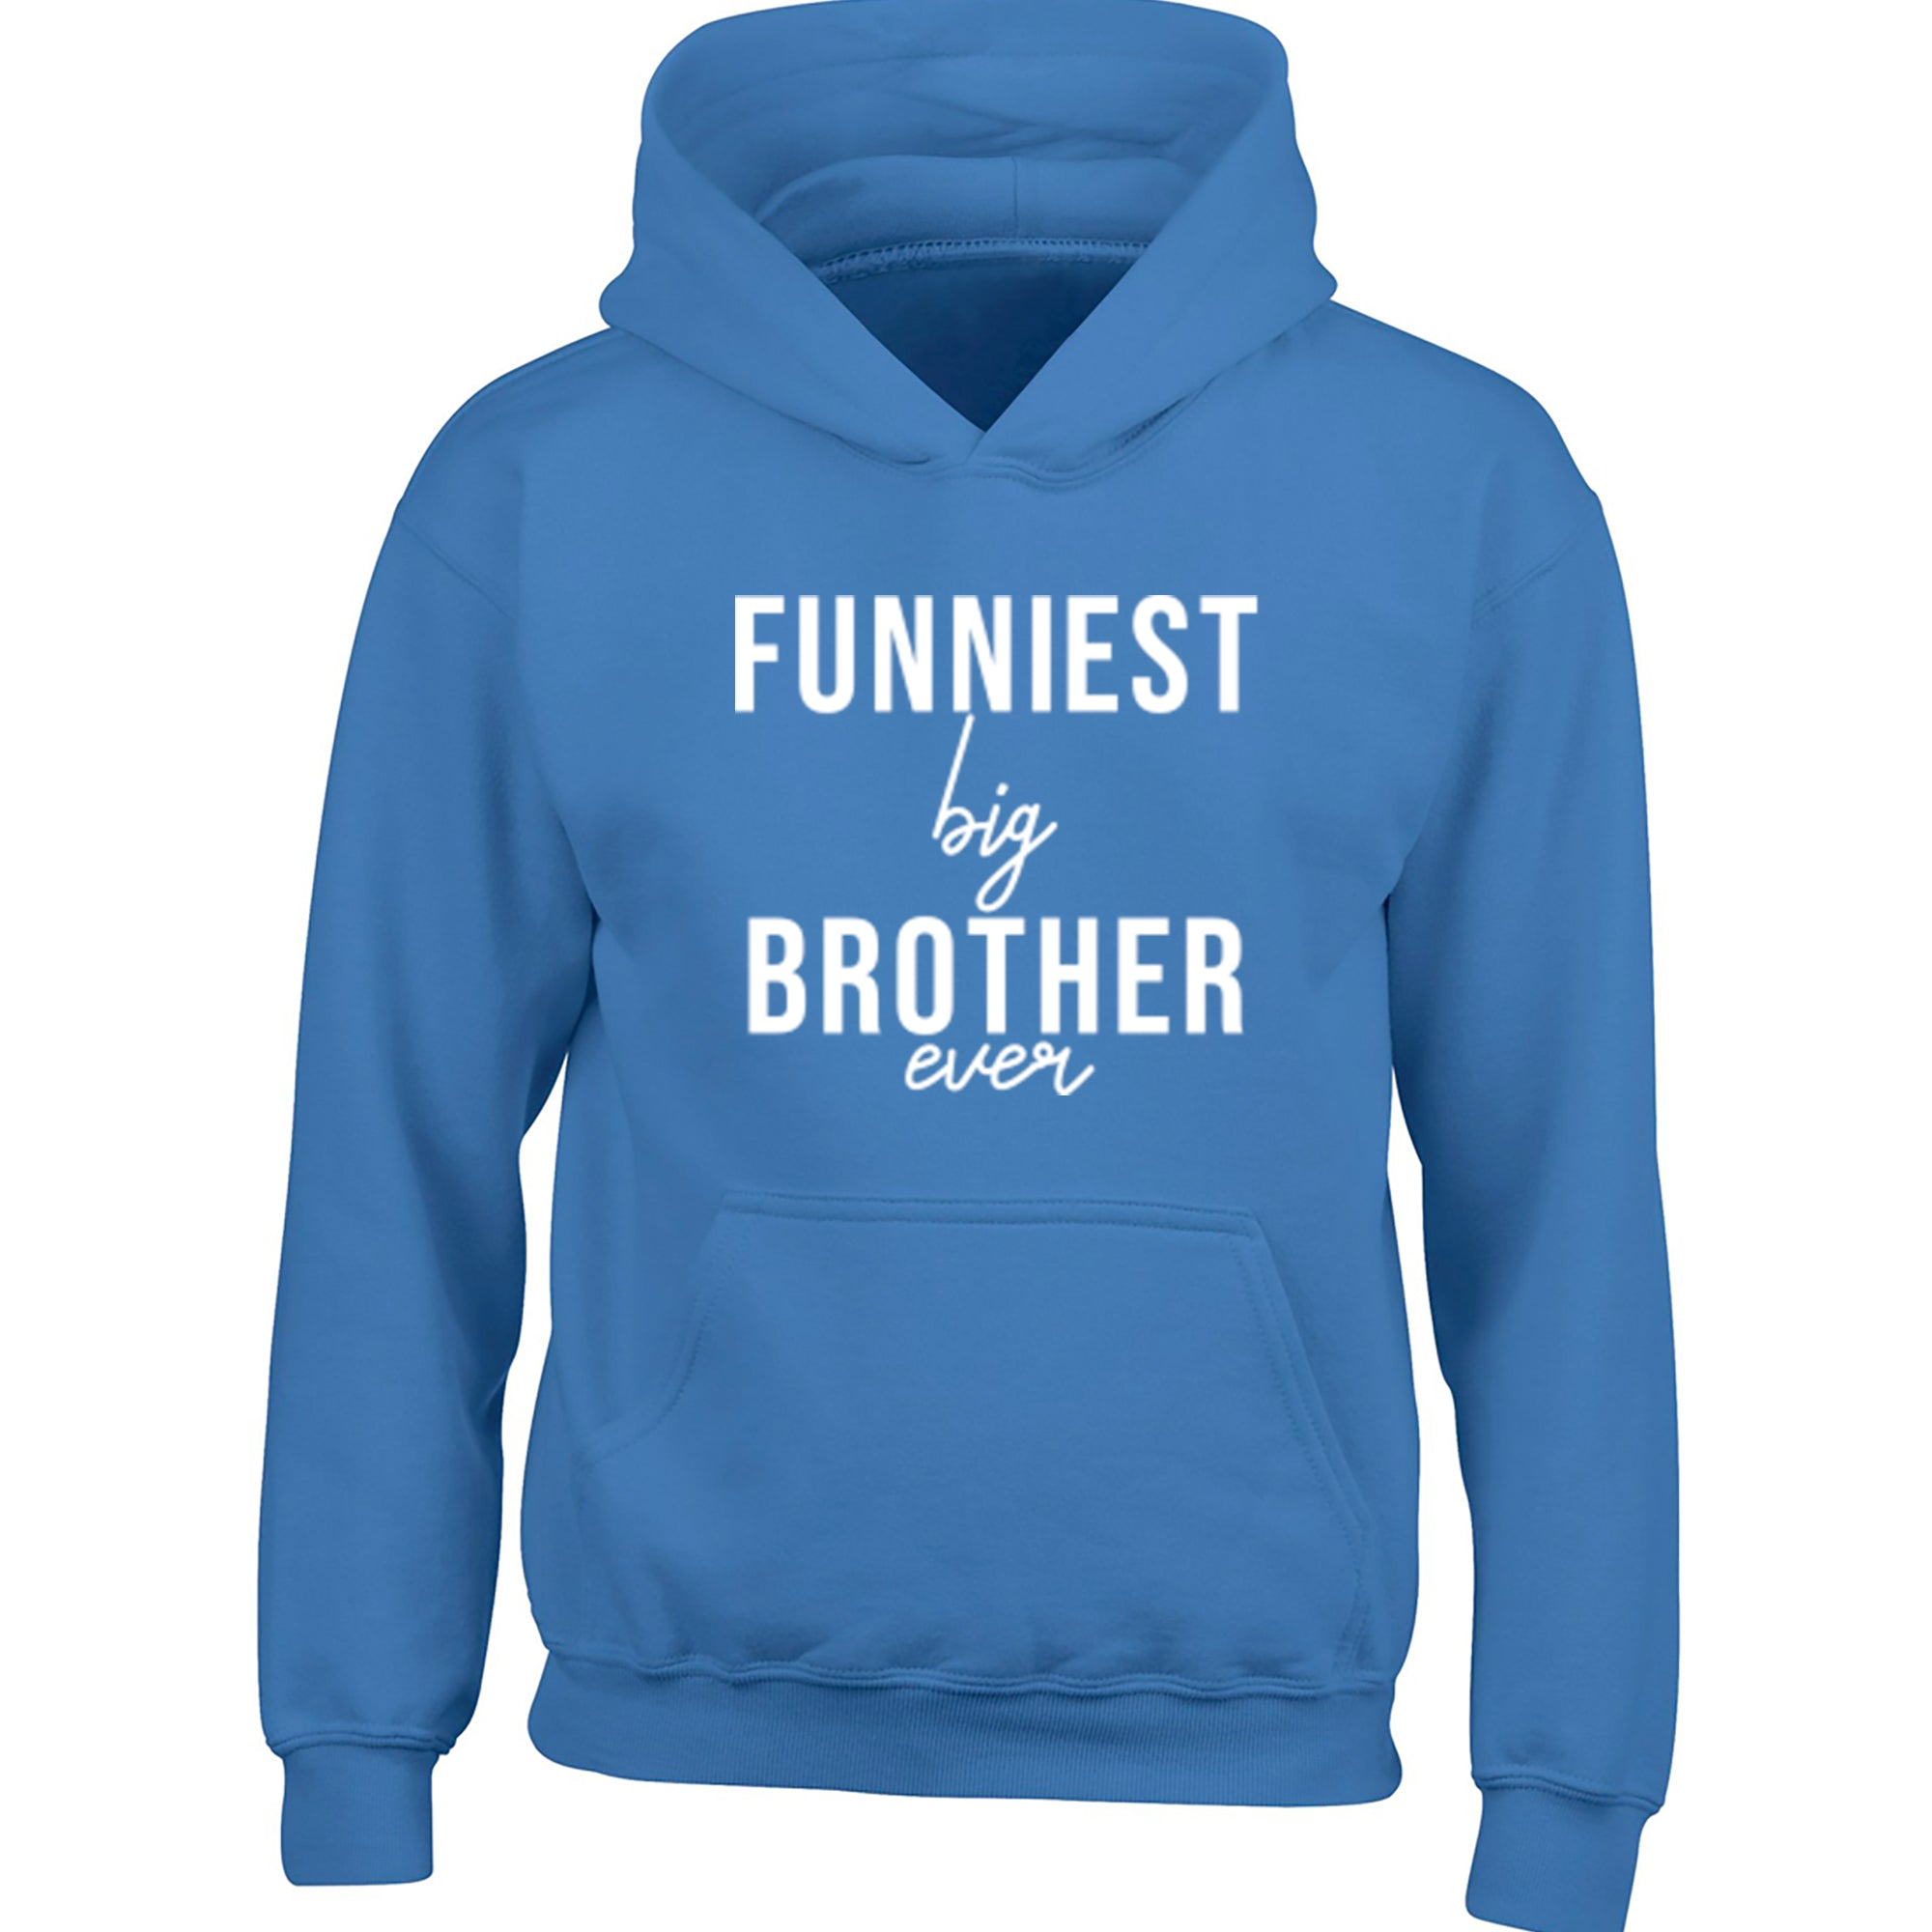 Funniest Big Brother Ever Childrens Ages 3/4-12/14 Unisex Hoodie S0528 - Illustrated Identity Ltd.